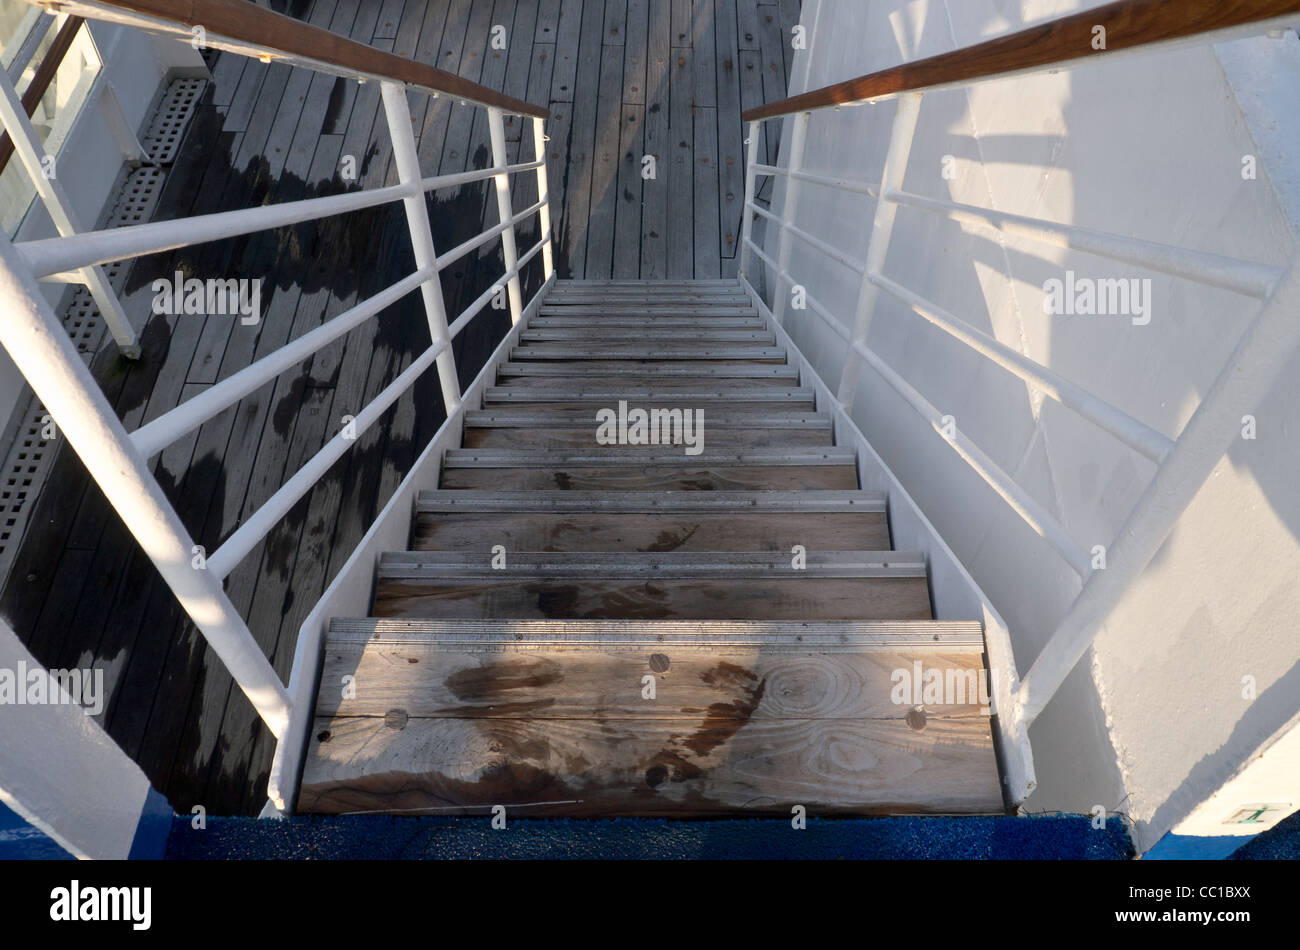 Outside staircase connecting decks aboard the cruise ship MS Boudicca - Stock Image